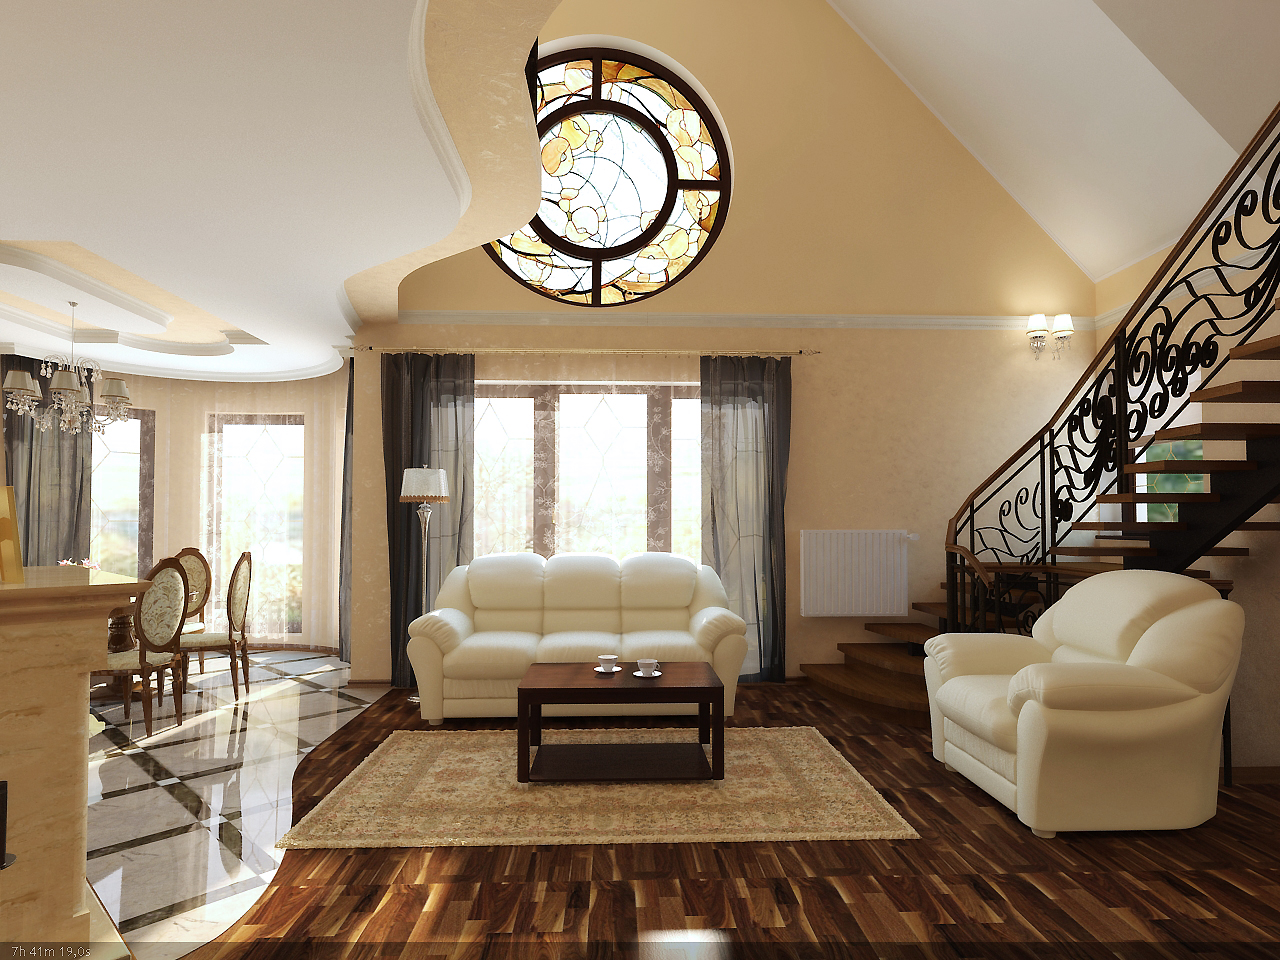 Classic Interior Design - House com interior design